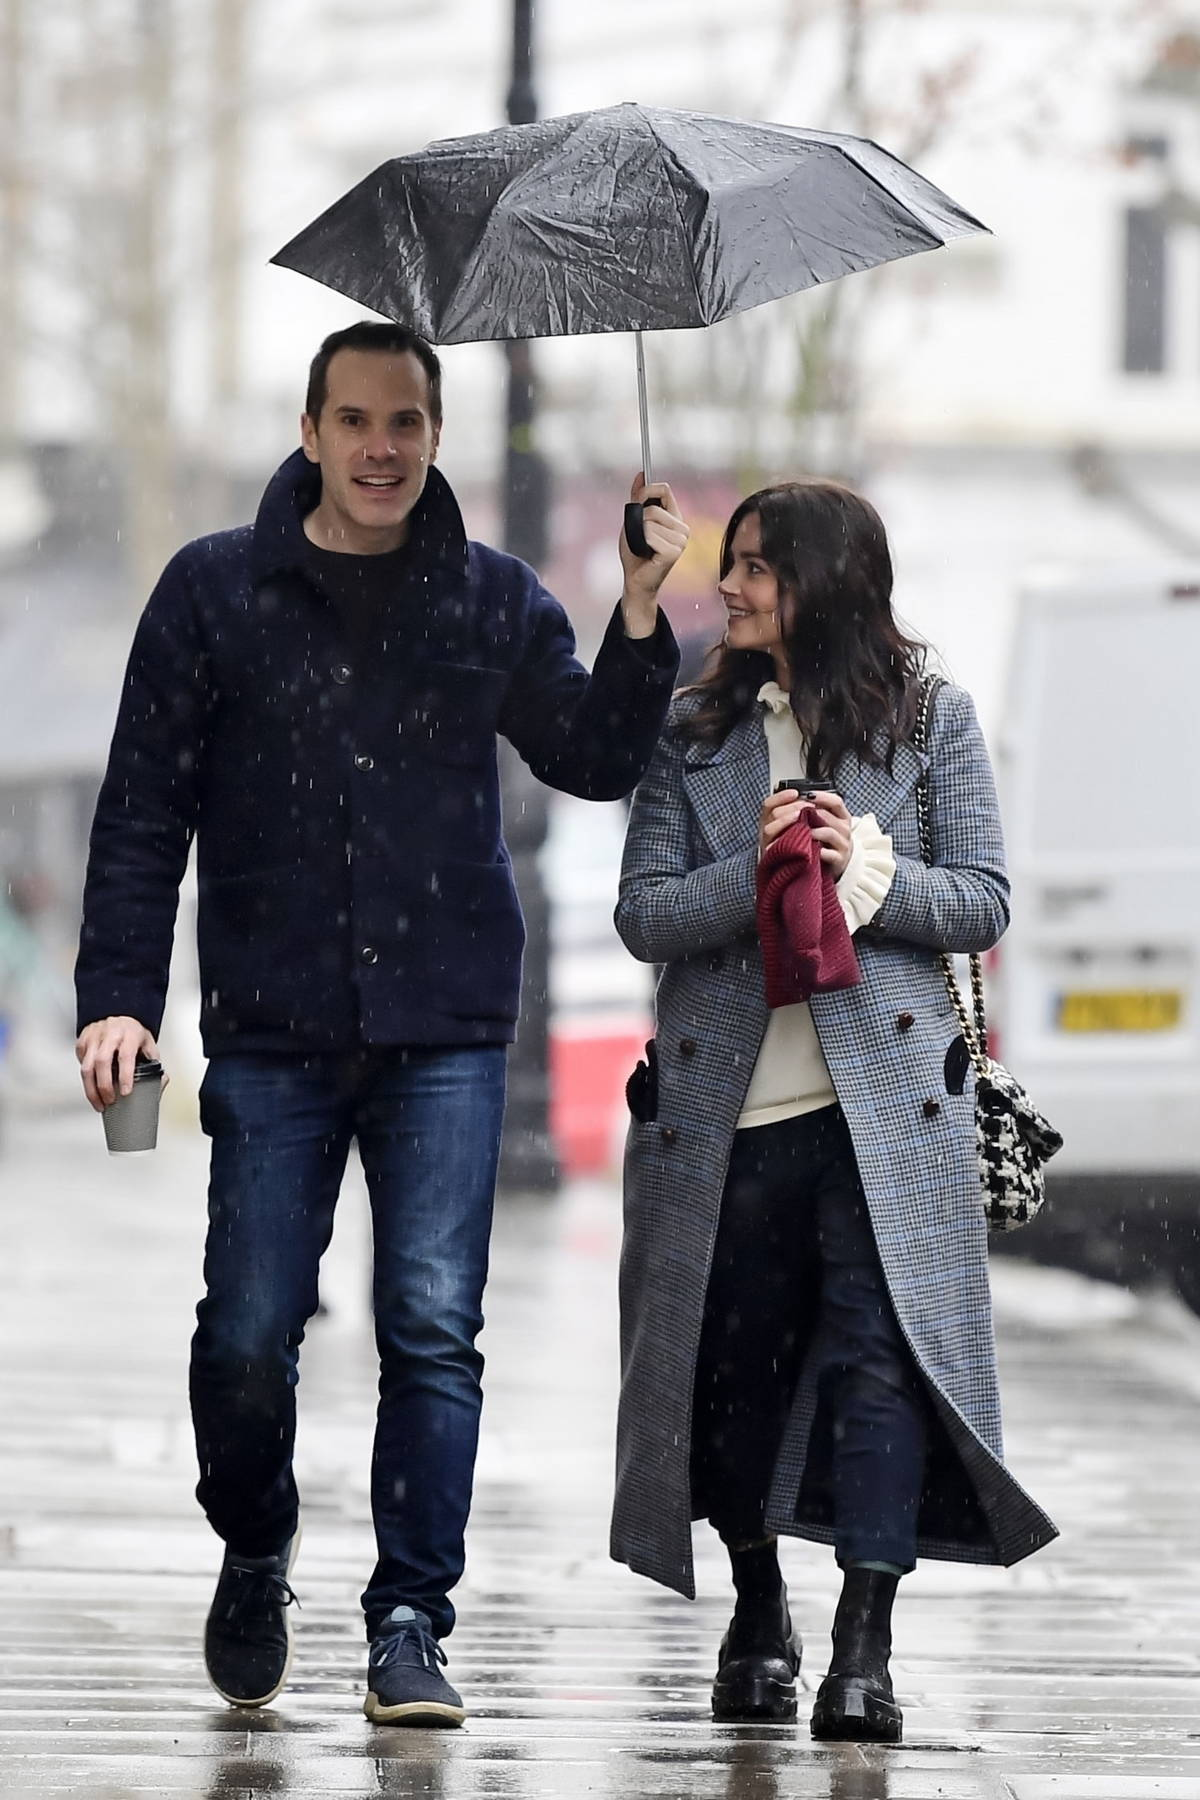 Jenna Coleman and Fabien Enjalric step out for walk on a rainy day in London, UK